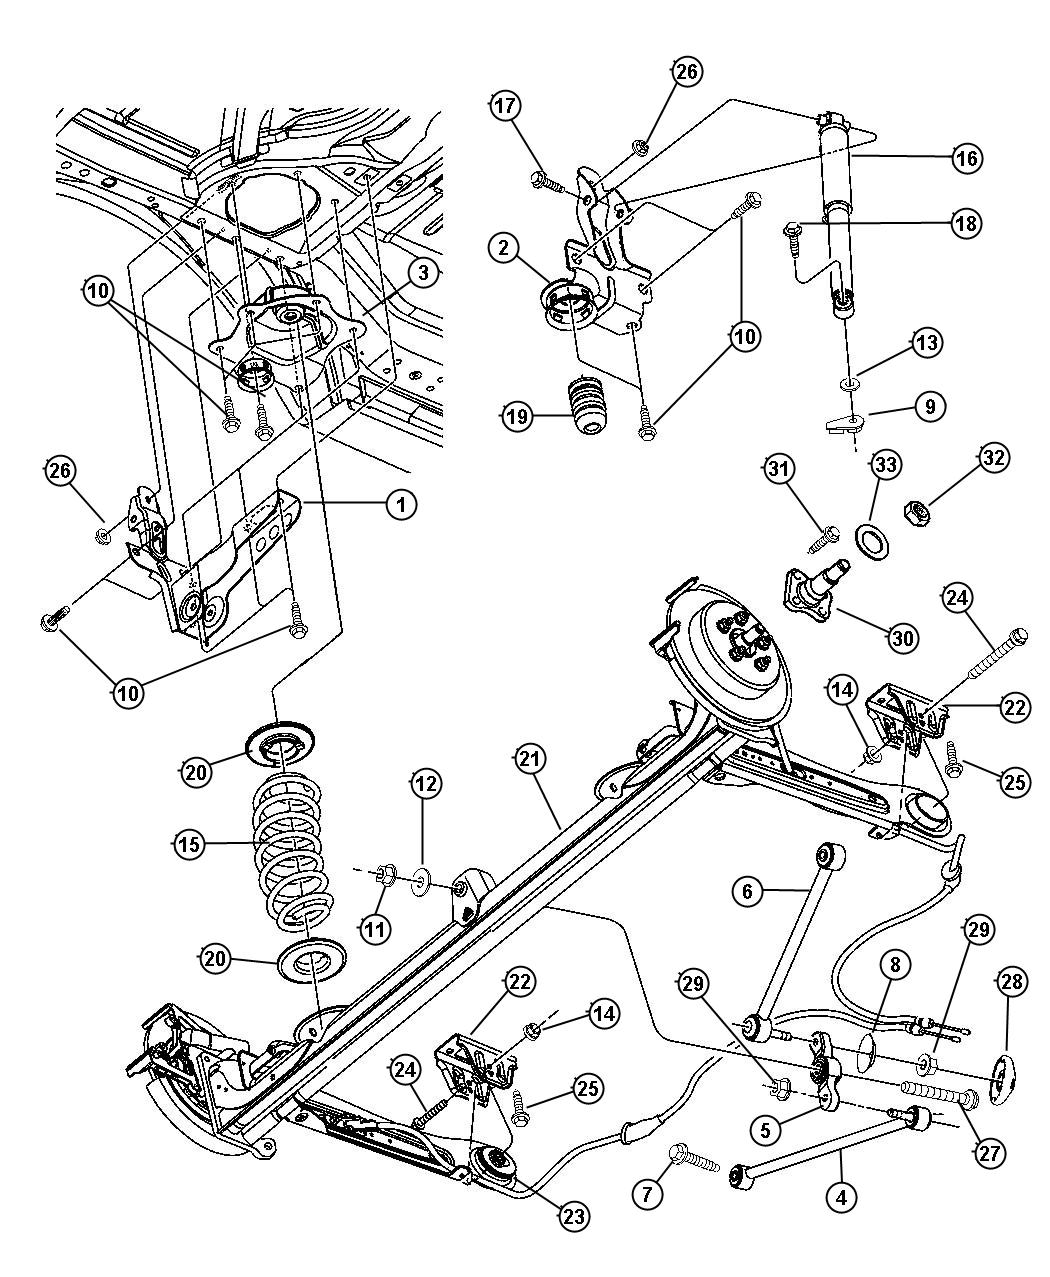 Daewoo Korando Air Bag Fuse Box Diagram